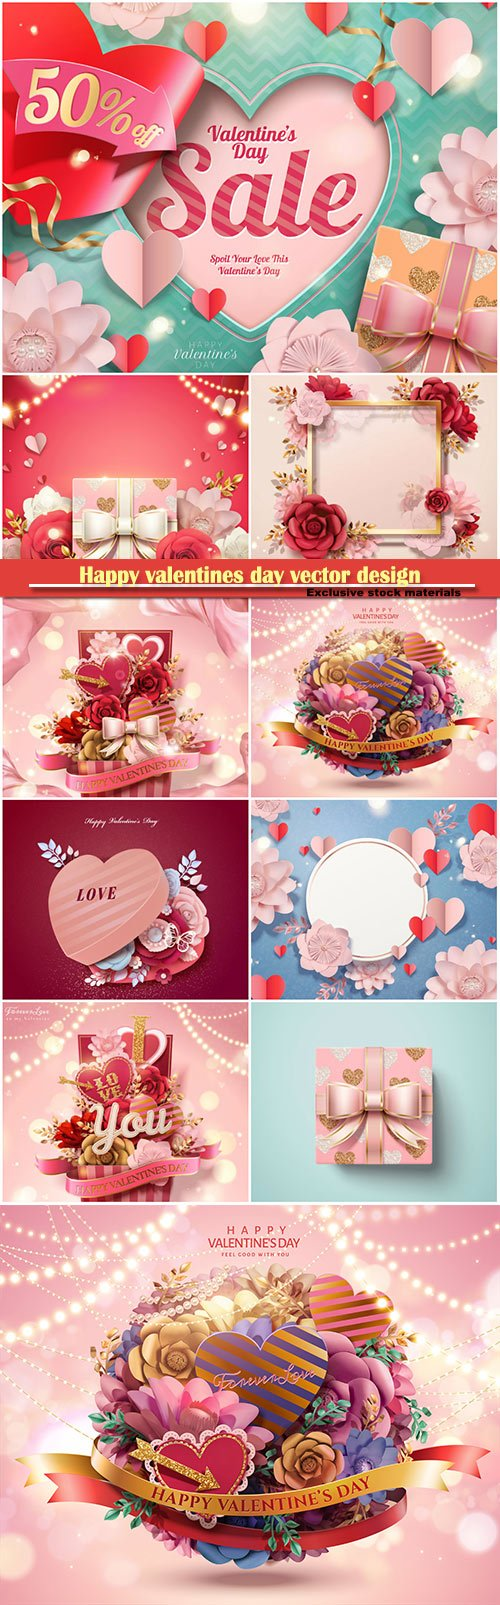 Happy valentines day vector design with heart, balloons, roses in 3d illustration # 10